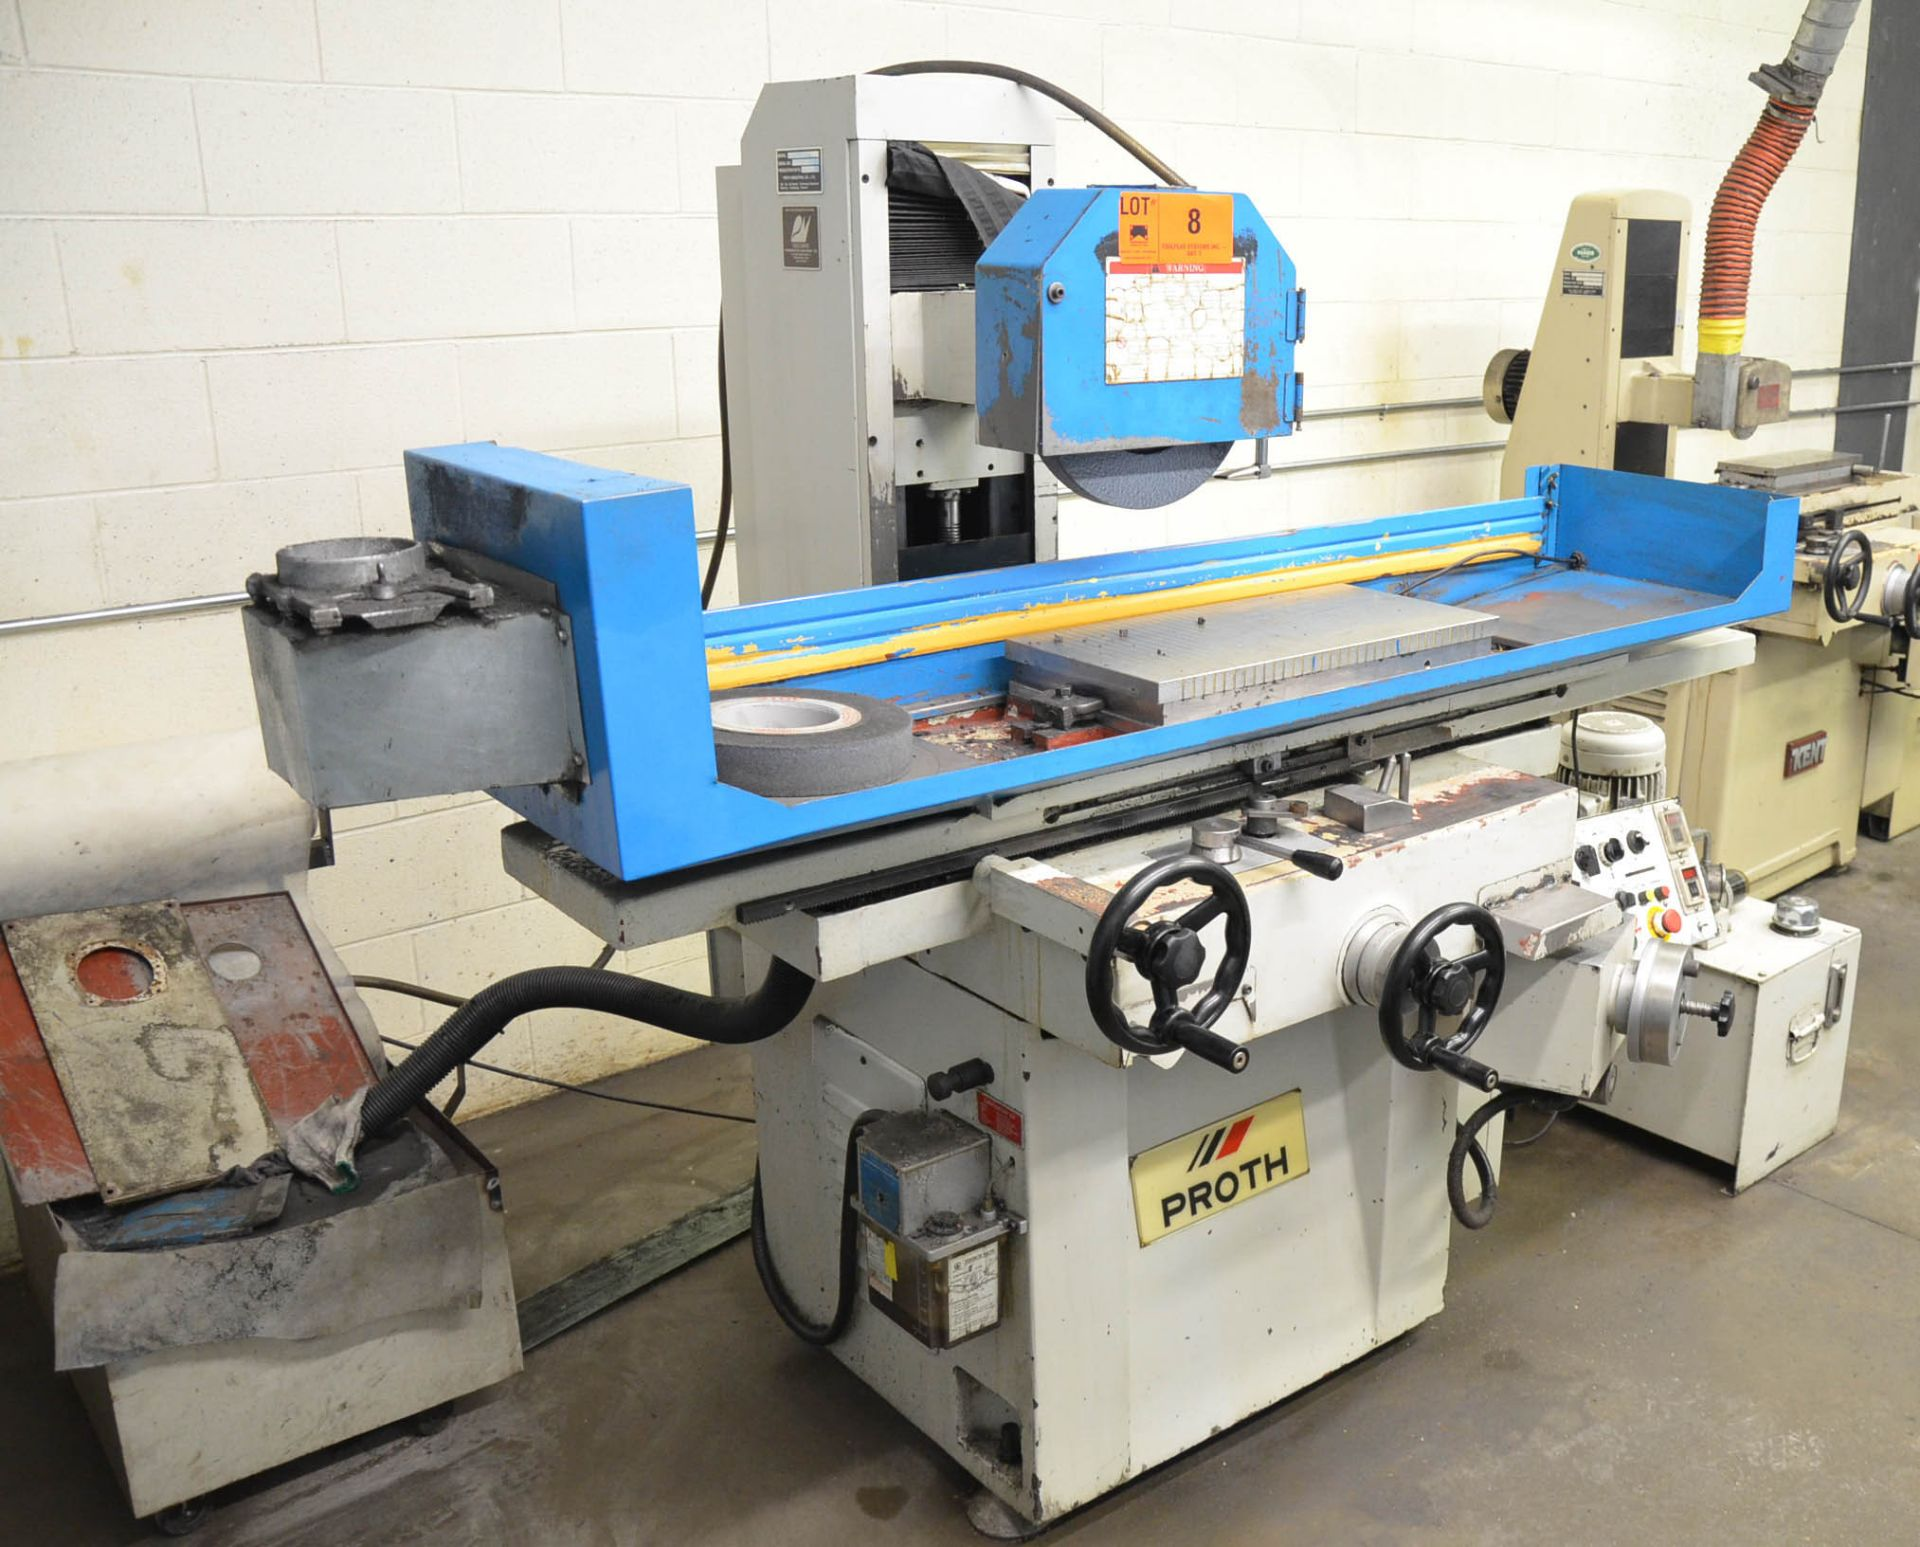 """PROTH (2005) PSGS-3060AH HYDRAULIC SURFACE GRINDER WITH 12""""X24"""" ELECTRO-MAGNETIC CHUCK, 16"""" WHEEL, - Image 3 of 6"""